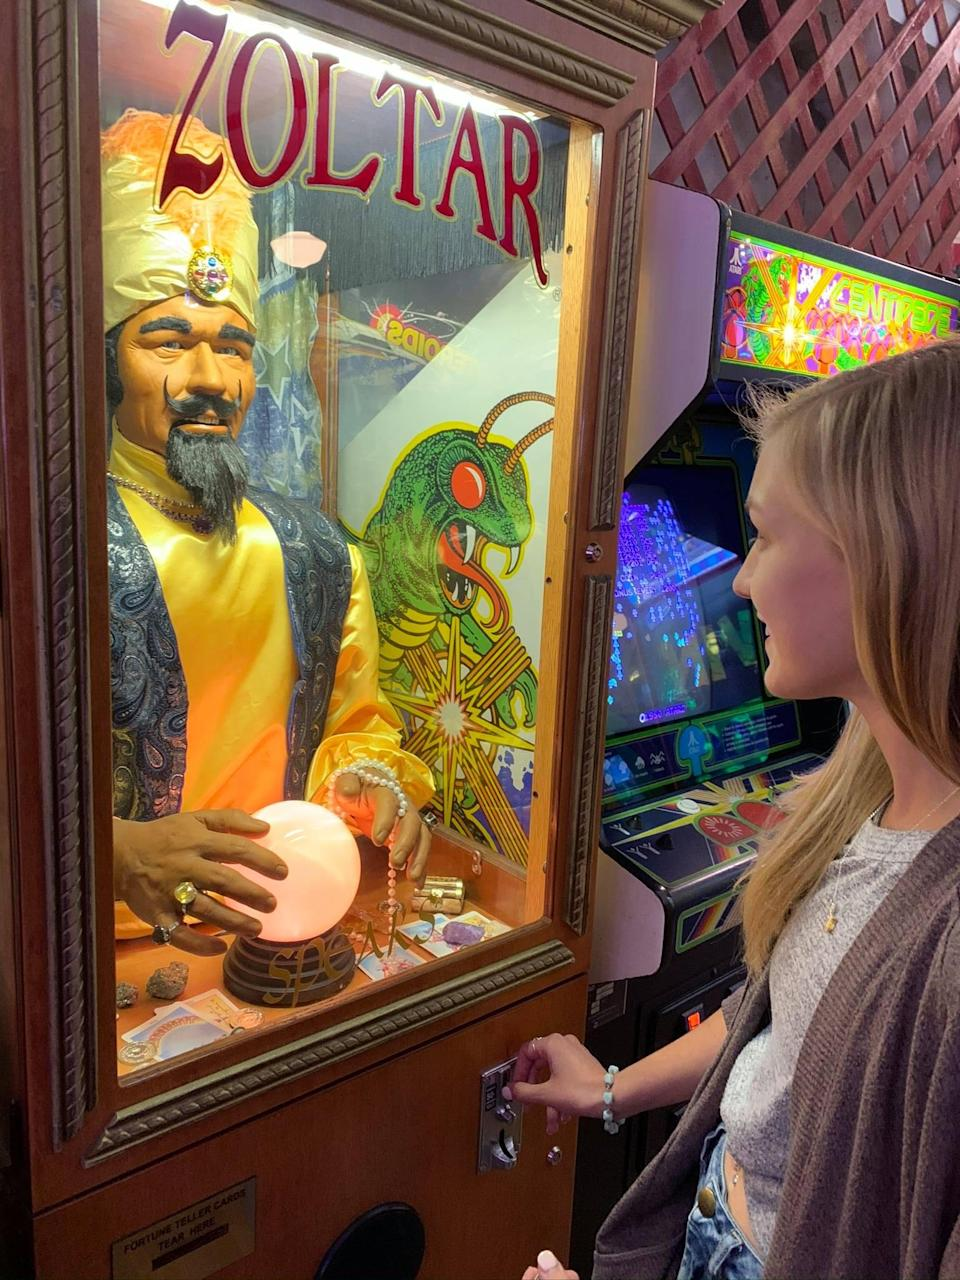 Gabby Petito looks at a mechanical fortune teller in an arcade. (Find Gabby Facebook page)